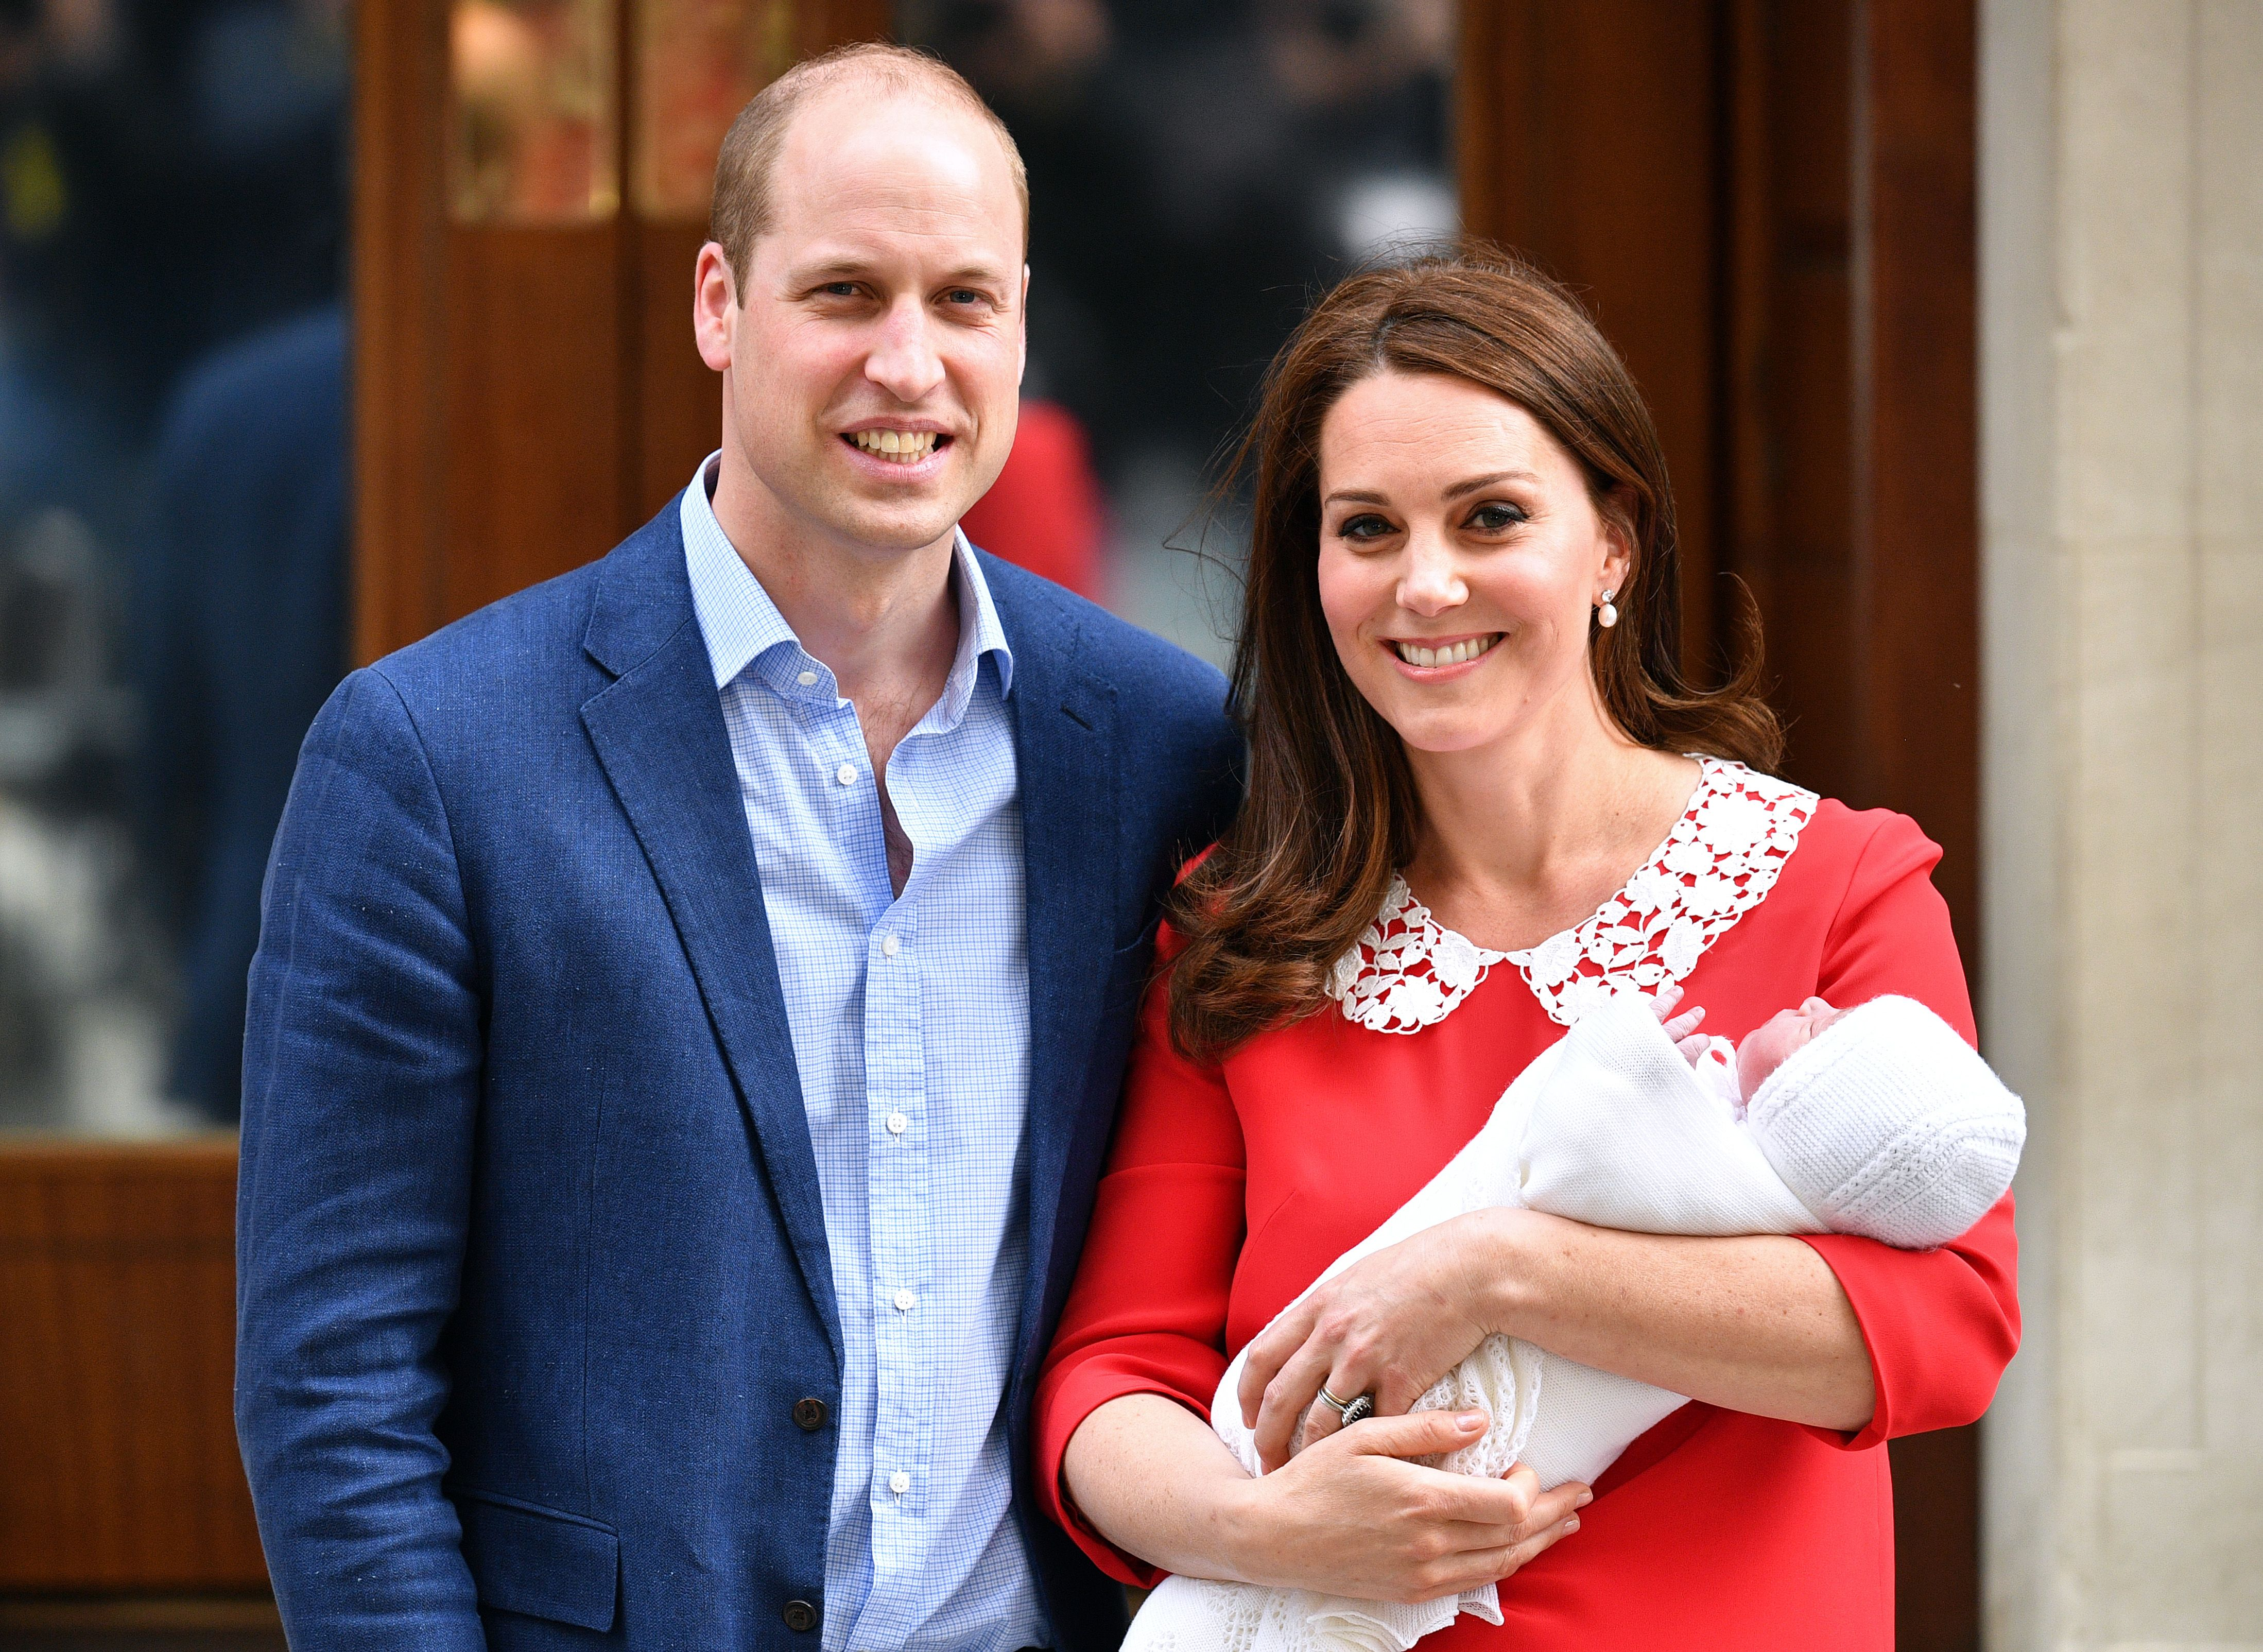 Catherine Duchess of Cambridge and Prince William leaving hospital with their newborn baby boyCatherine Duchess of Cambridge gives birth to her third child, Lindo Wing, St Mary's Hospital, London, UK - 23 Apr 2018